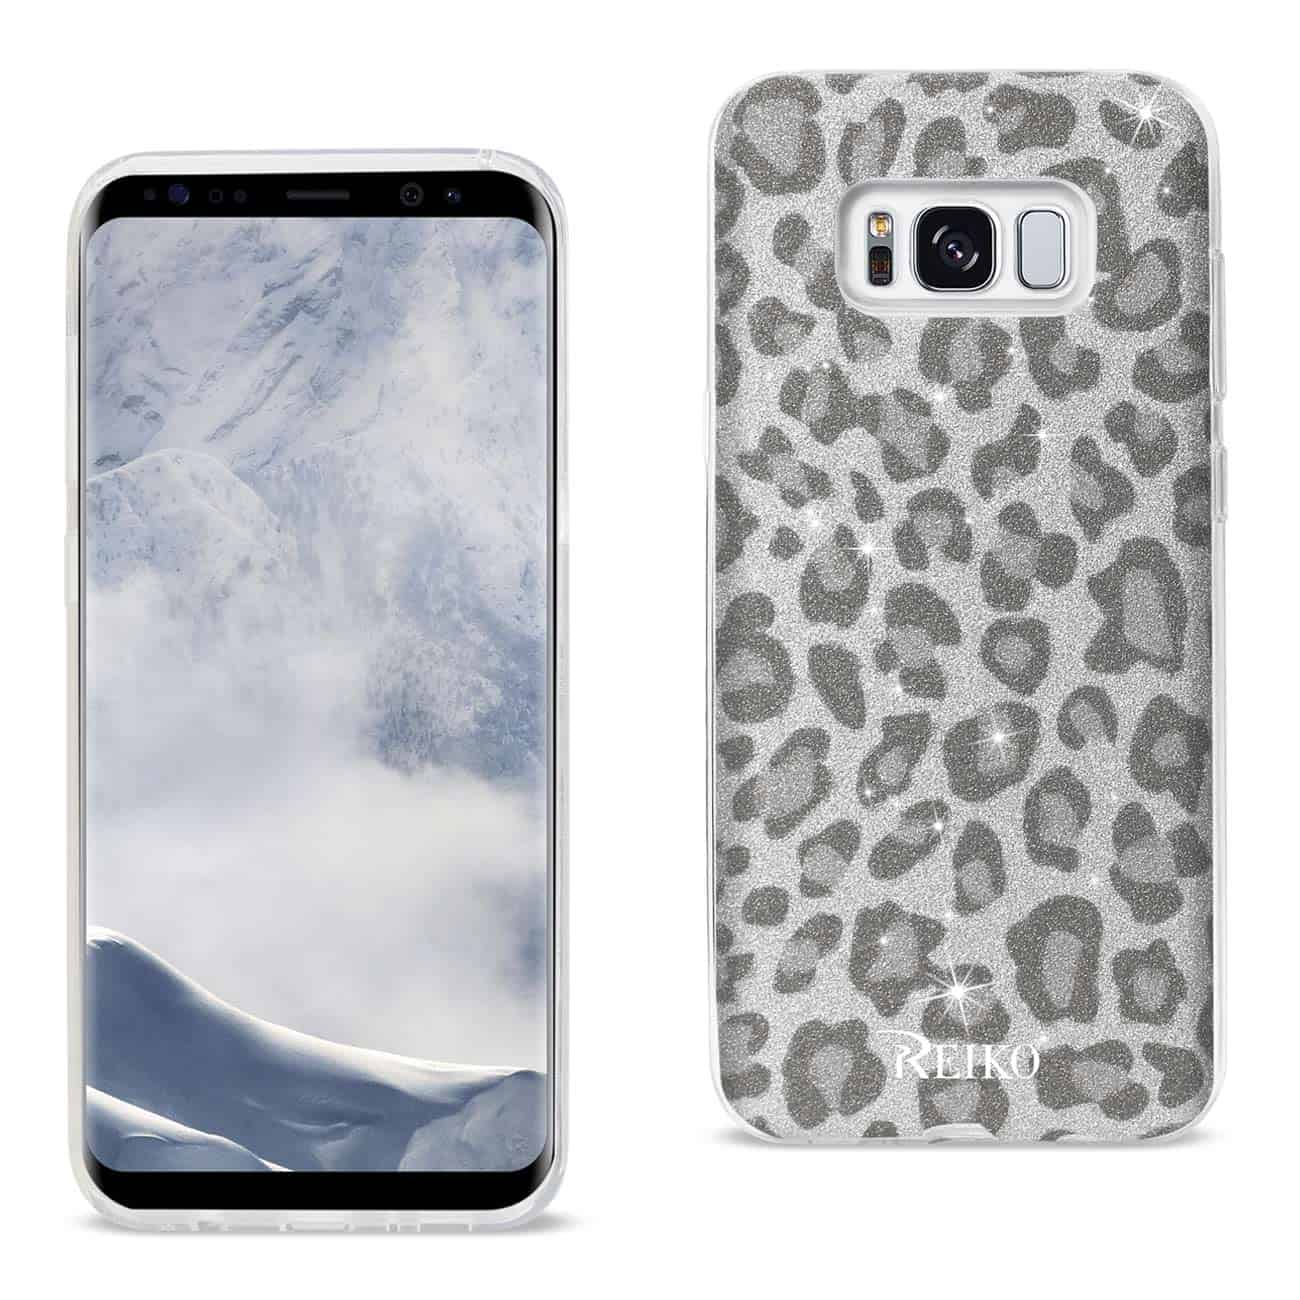 SAMSUNG GALAXY S8 EDGE/ S8 PLUS SHINE GLITTER SHIMMER LEOPARD HYBRID CASE IN SILVER